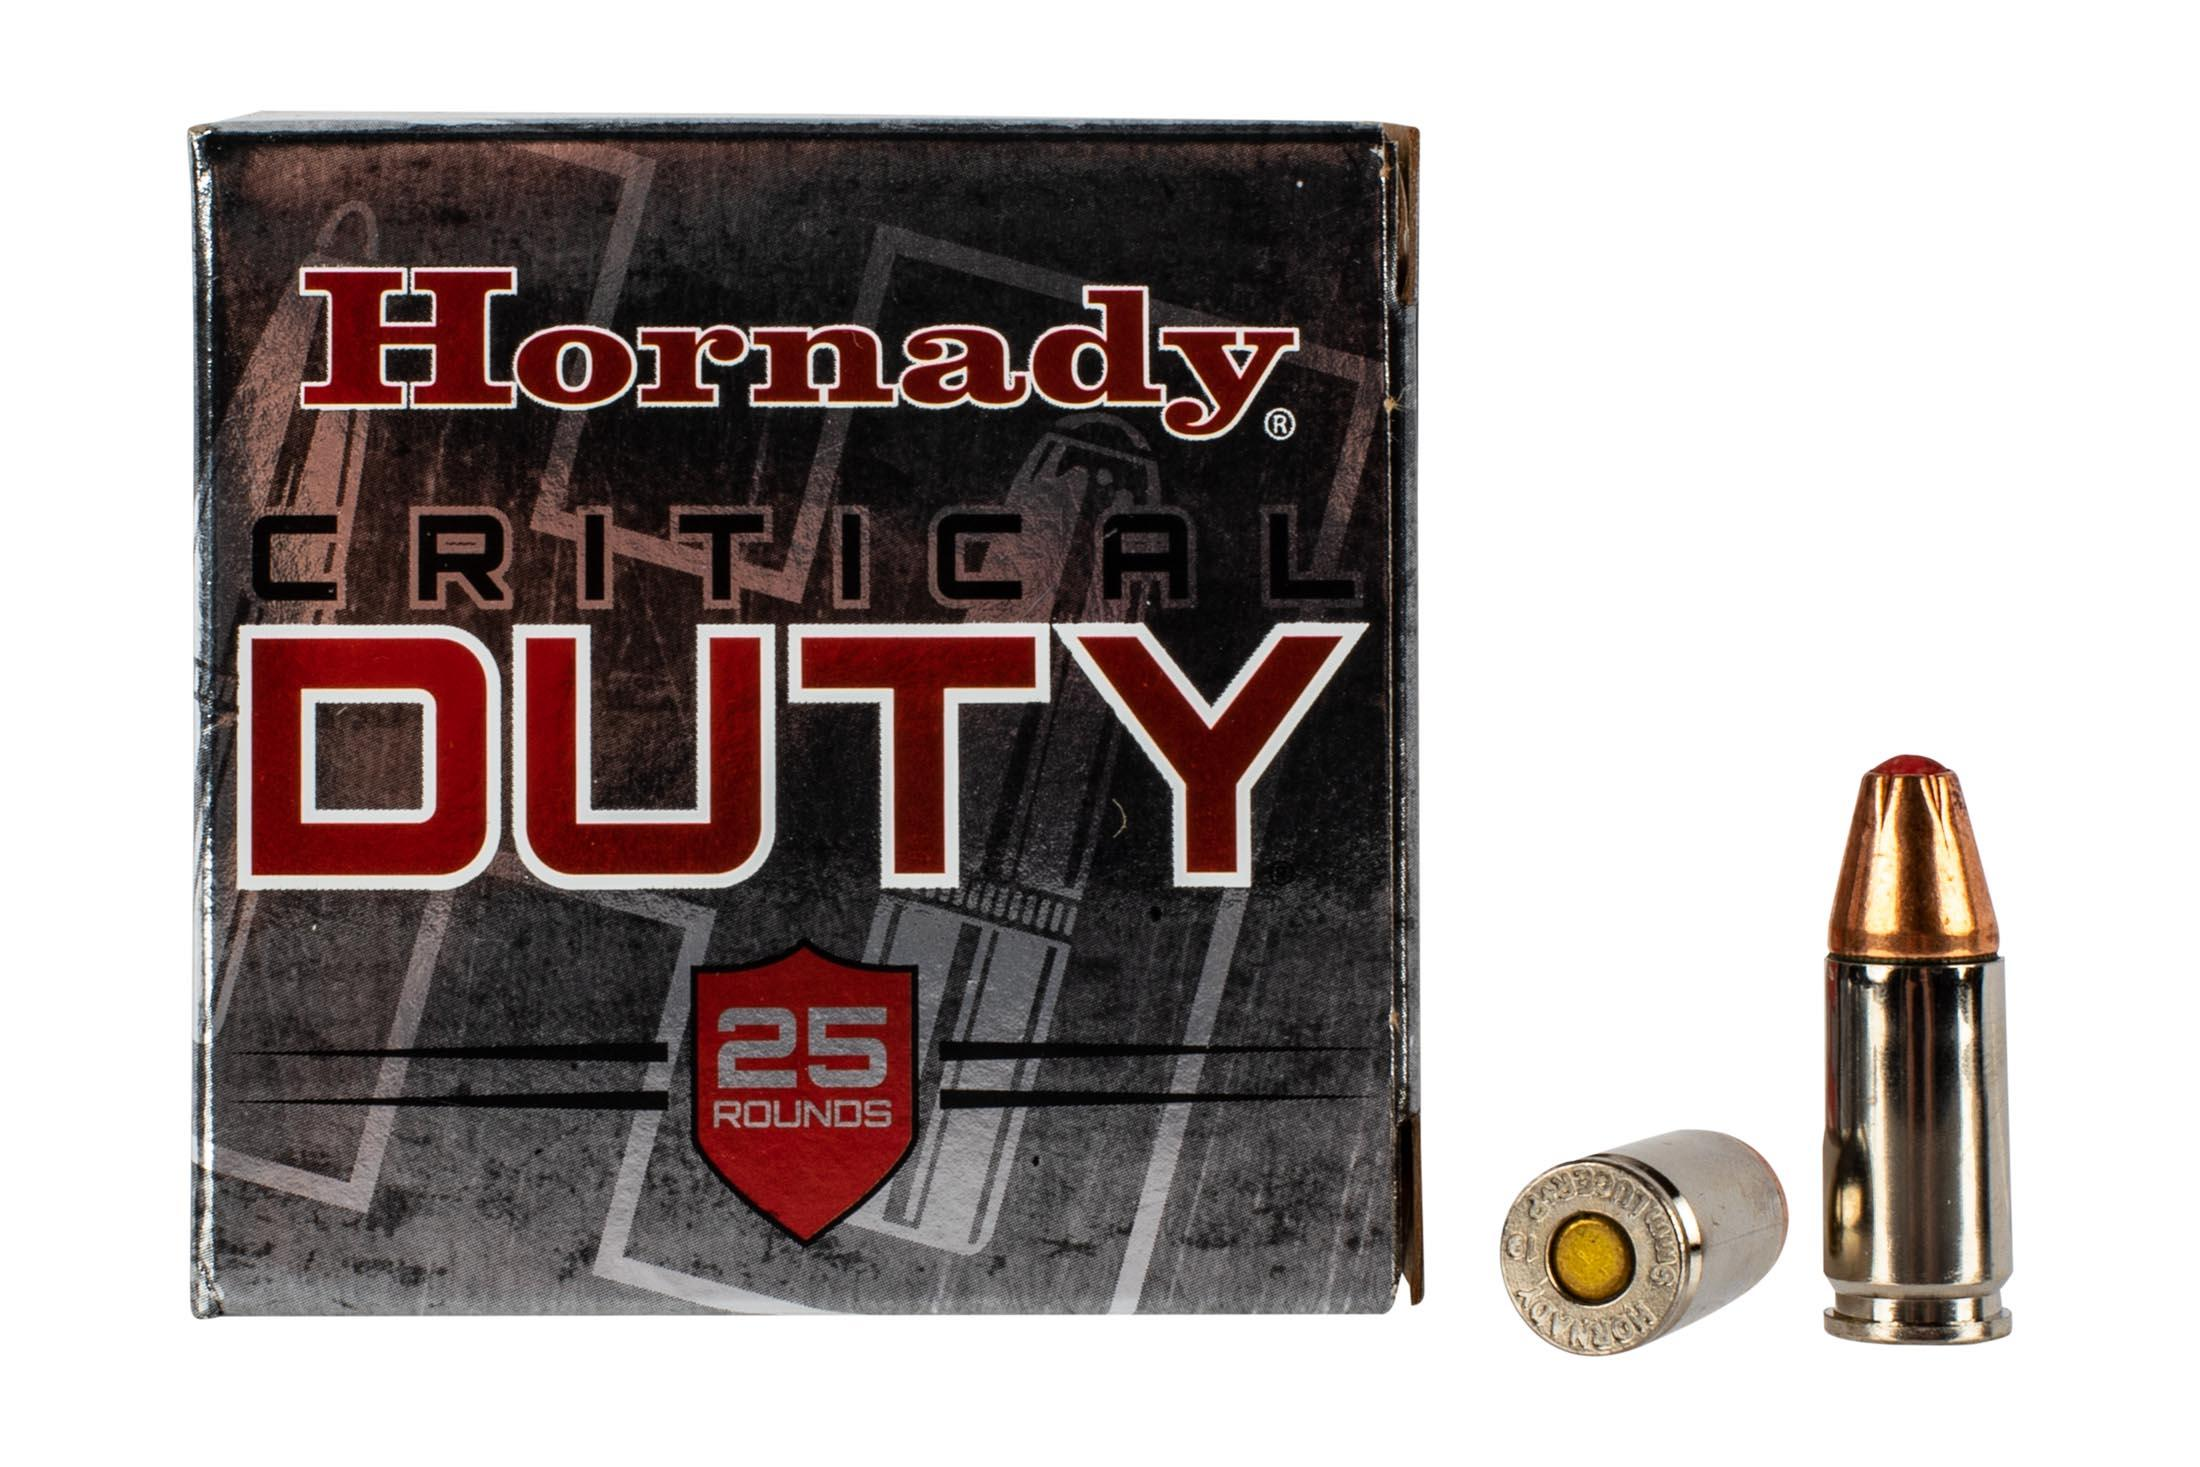 Hornady Critical Duty 9mm Hollow Point FlexLock ammo is loaded to +P pressures